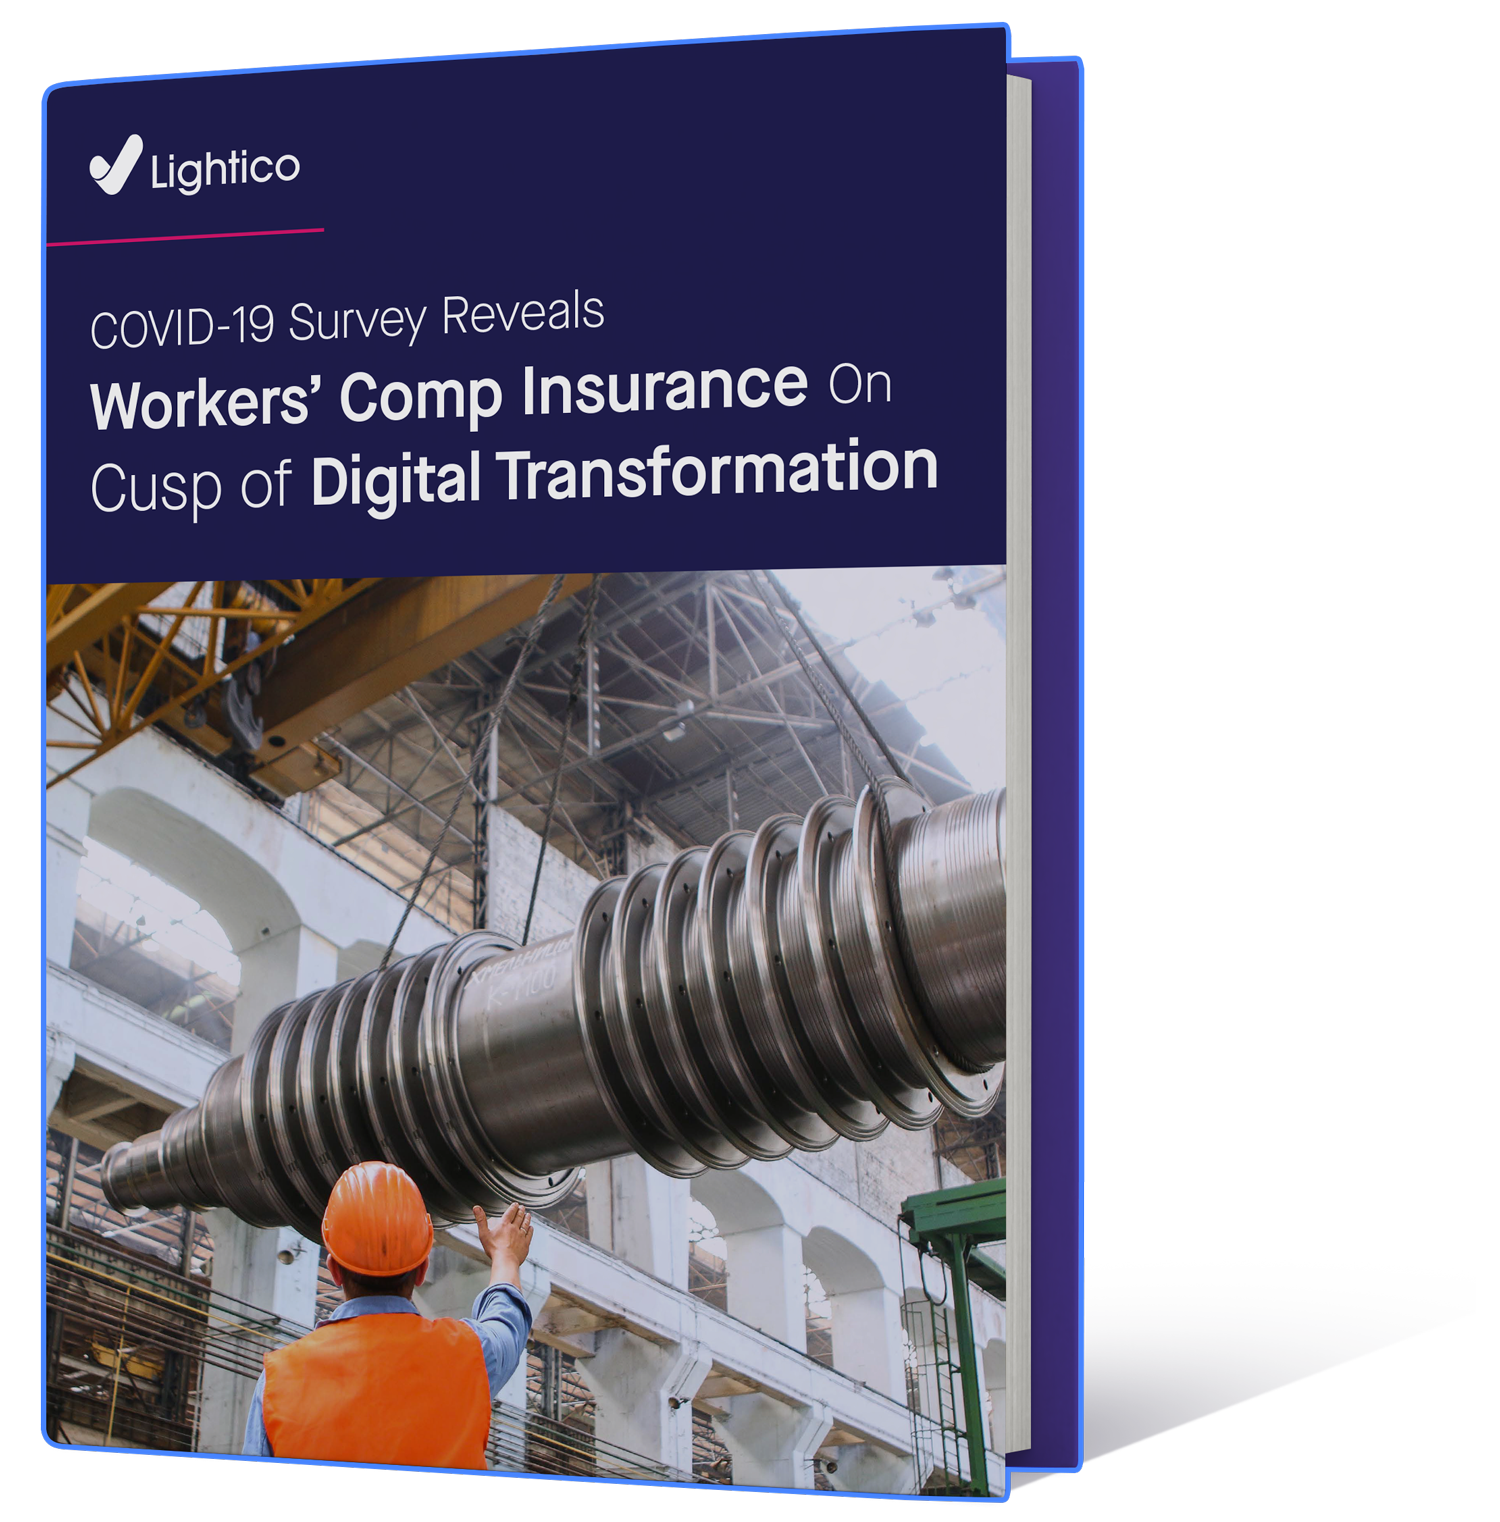 Workers-Comp-Insurance-On-Cusp-Digital-Transformation-eBook-Free-Book-Title-Cover-Mockup-1